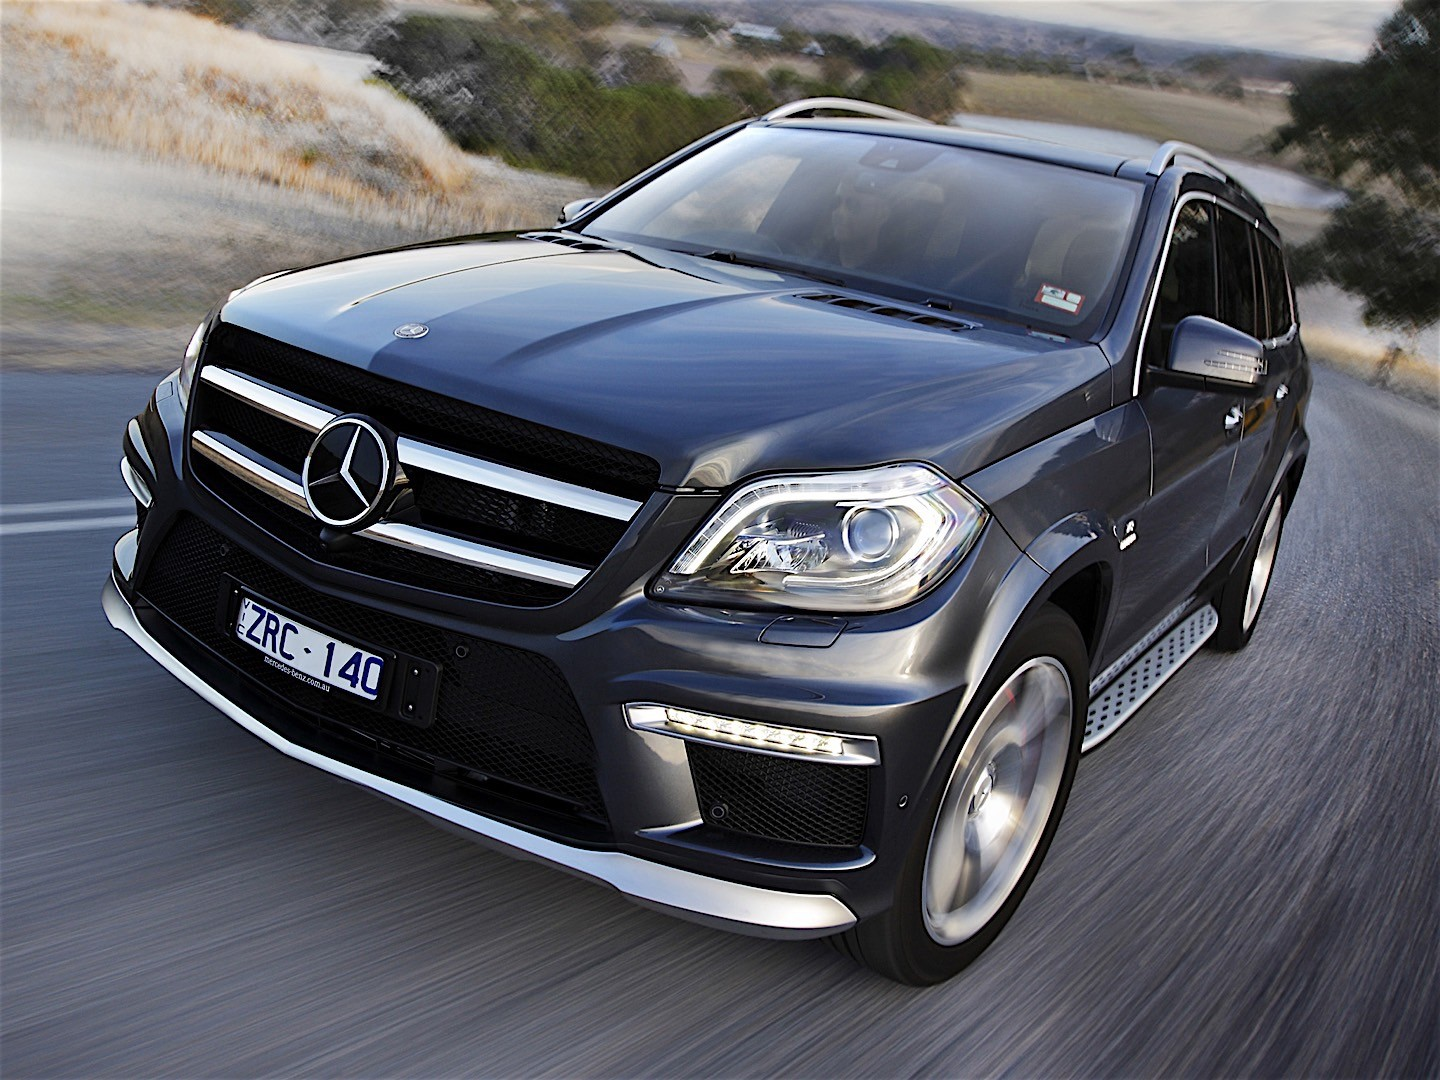 mercedes benz gl 63 amg x166 specs 2012 2013 2014. Black Bedroom Furniture Sets. Home Design Ideas